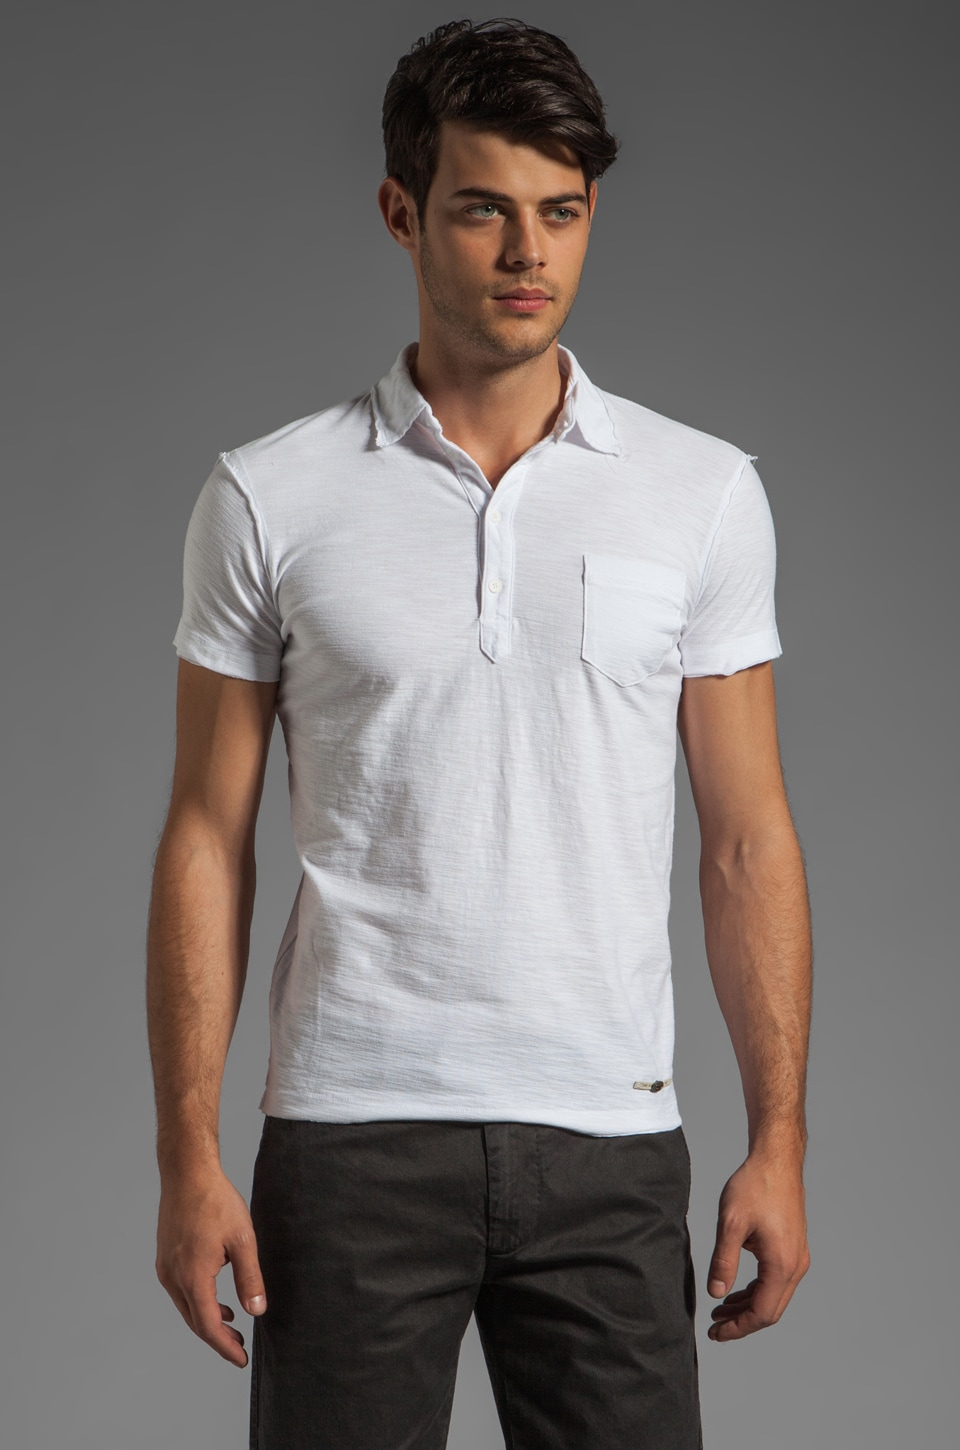 Diesel Ajar Polo in White